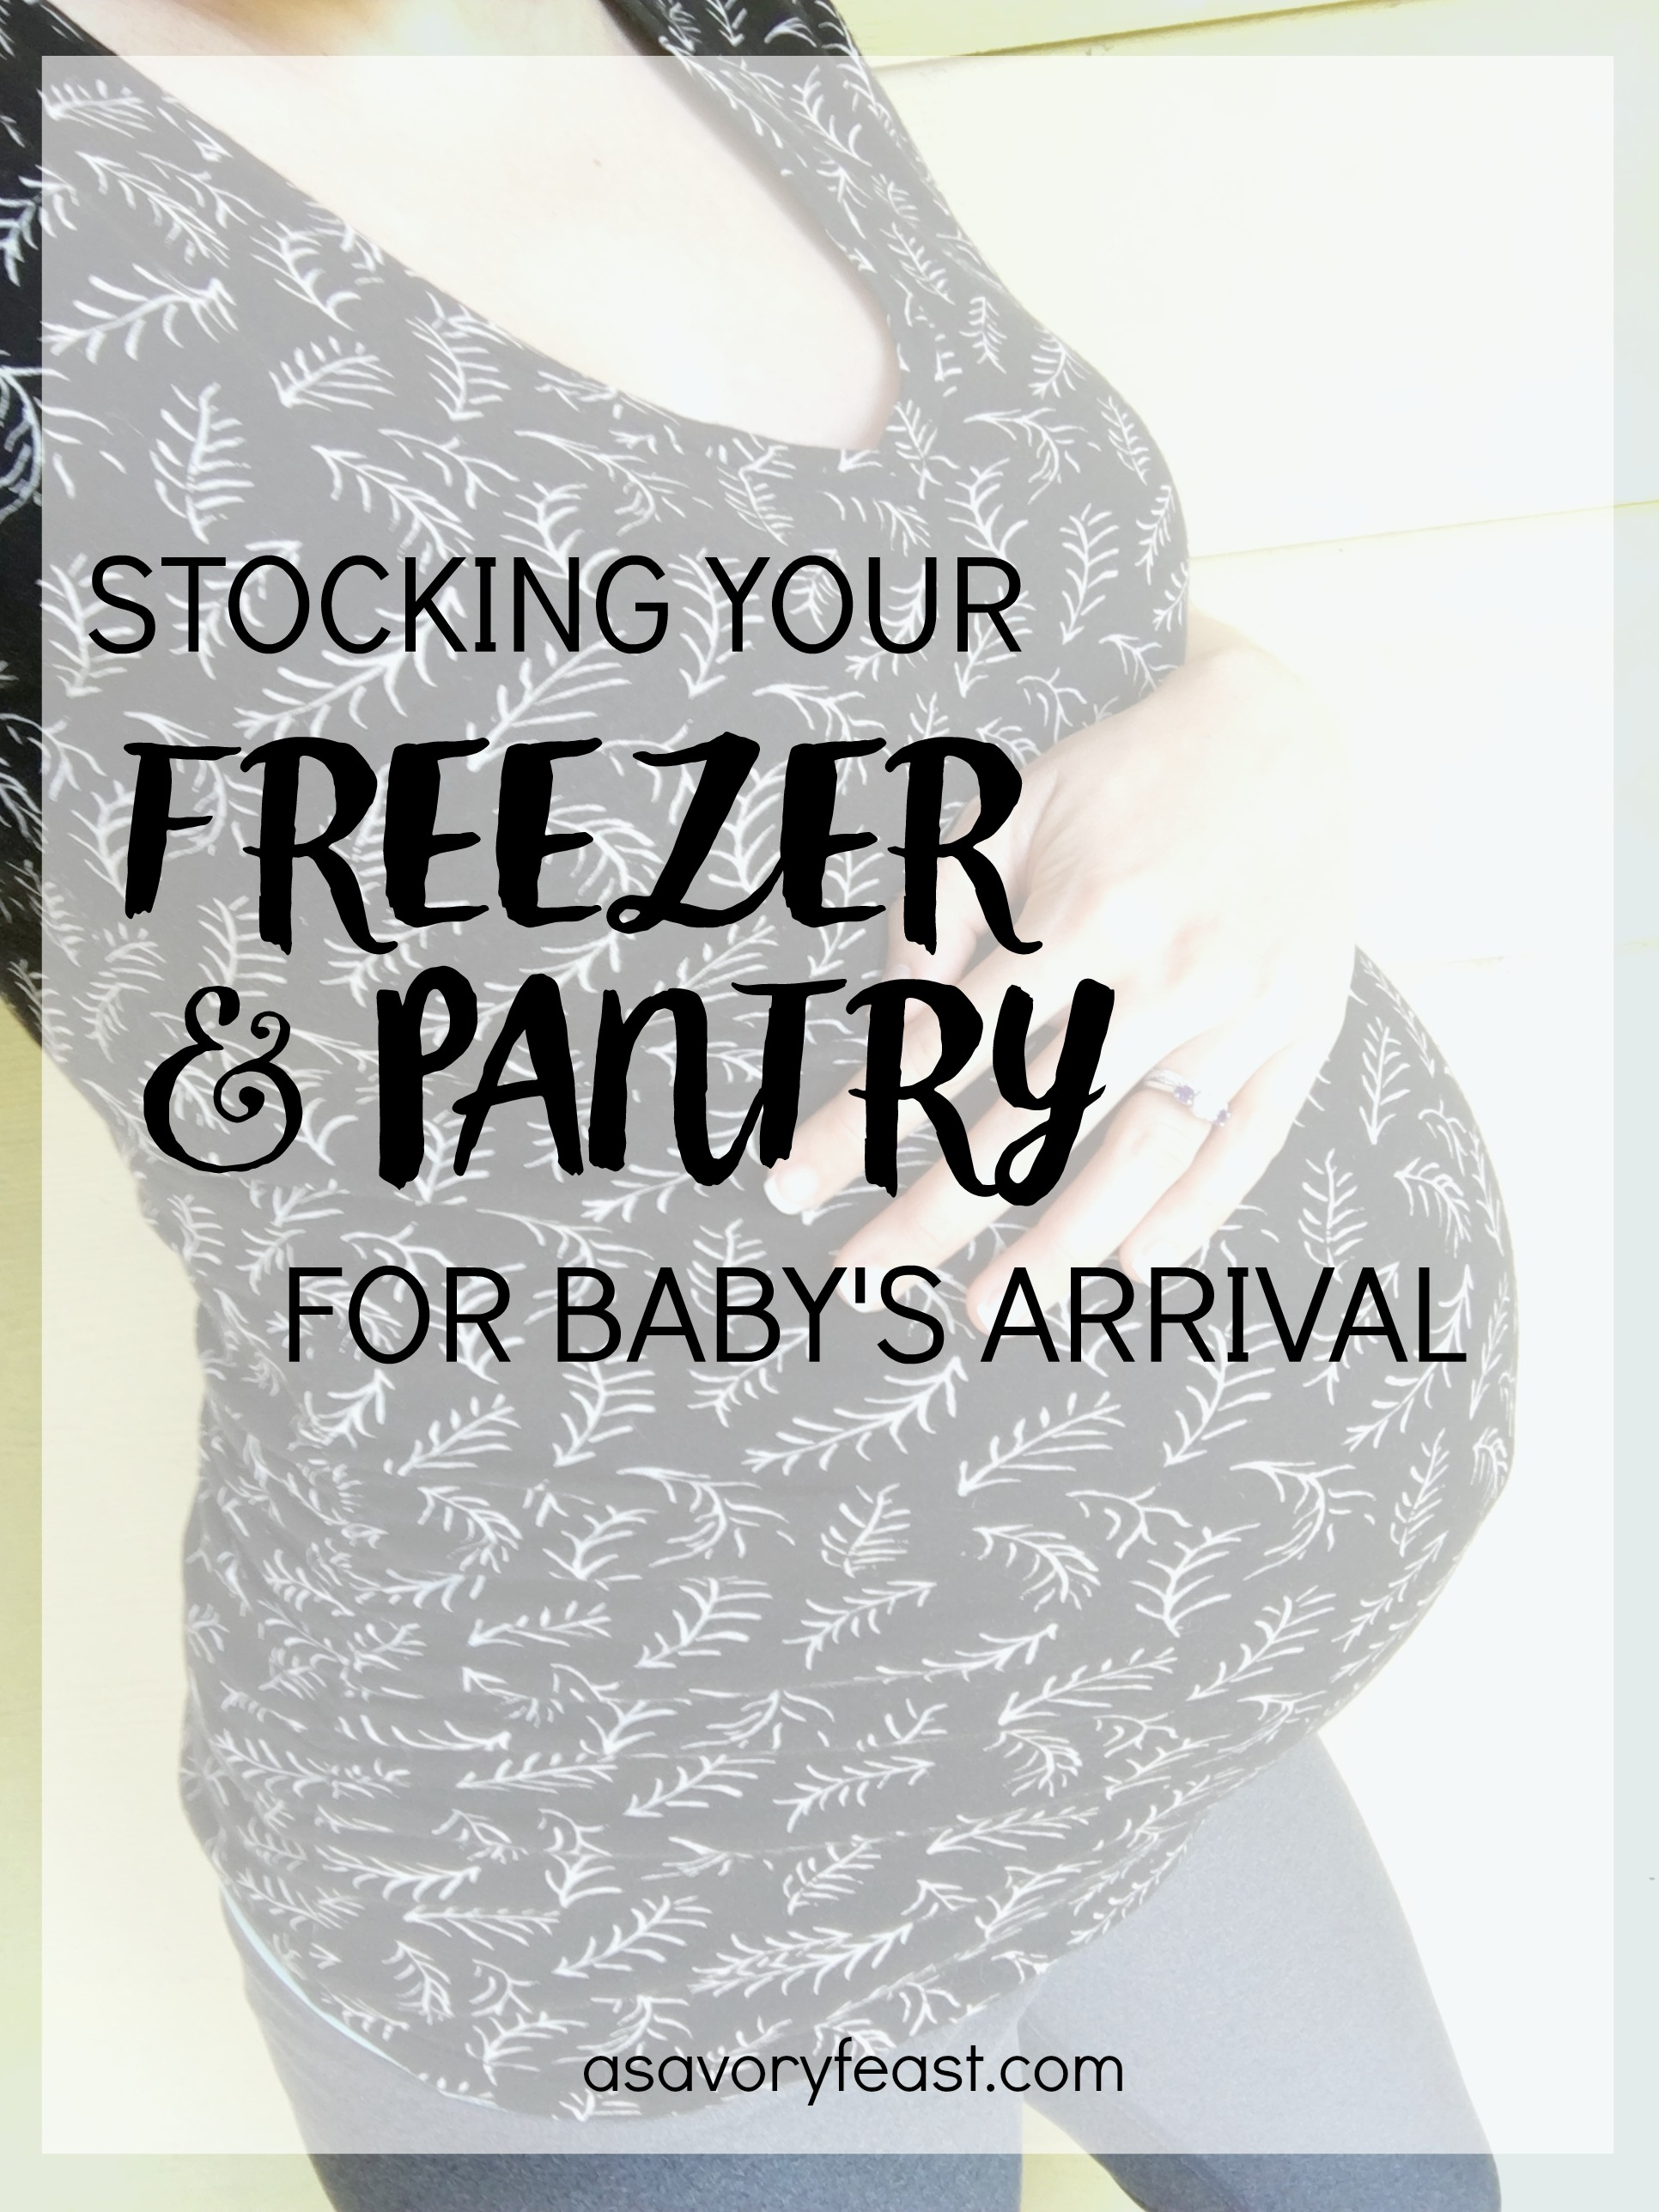 Got a baby on the way? Here are a bunch of great ideas for stocking your freezer and pantry with freezer meals, snacks and other necessities to make life easier in the first few weeks with a newborn. Great tips for any soon-to-be mom!